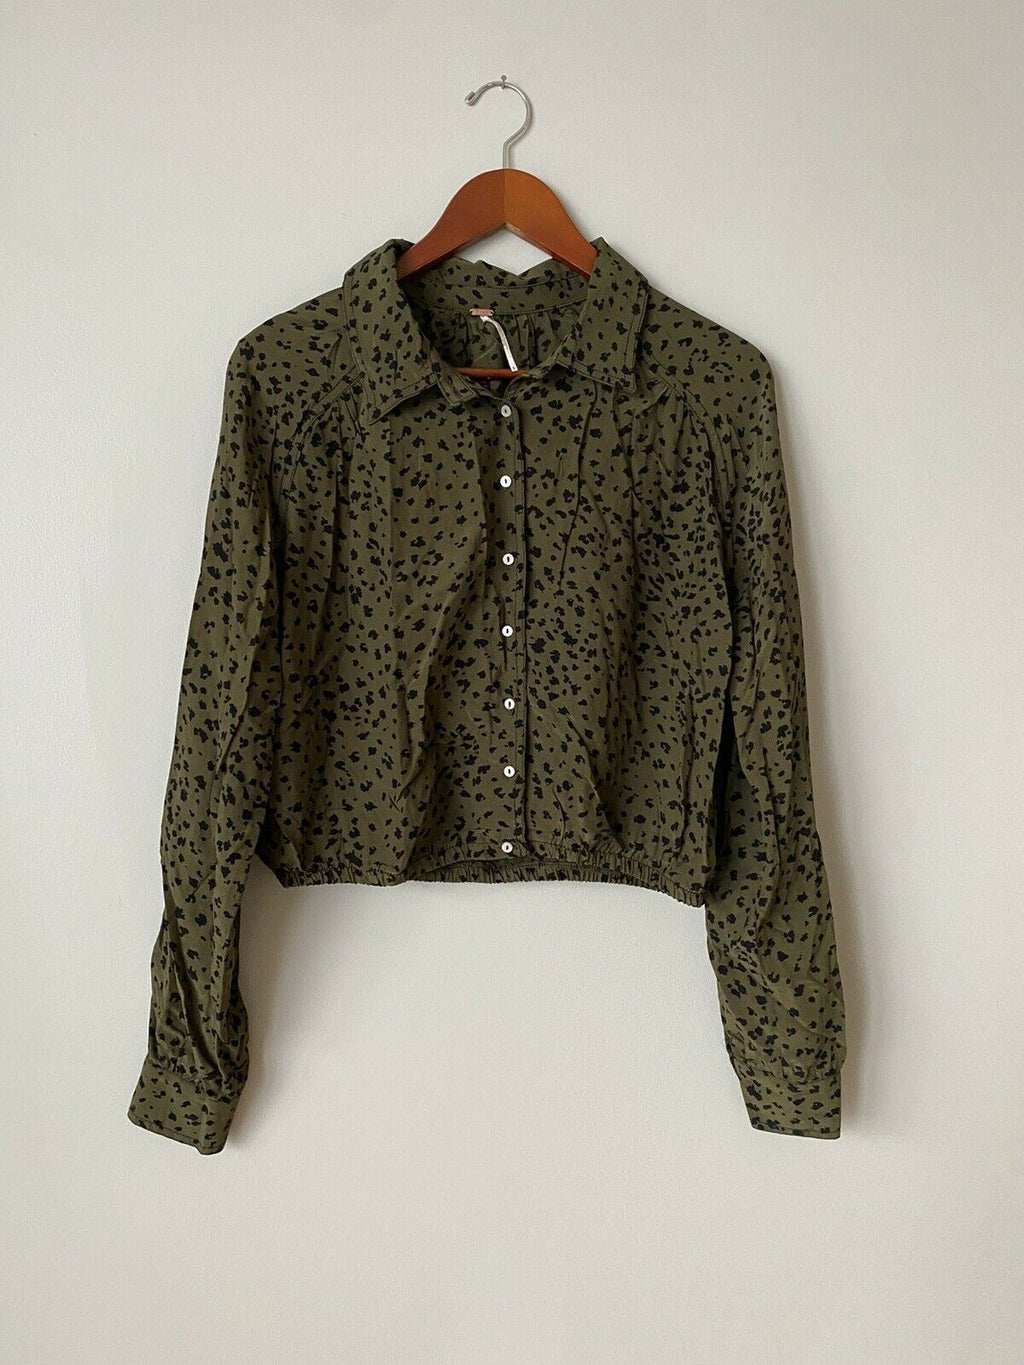 Free People Women's Small Green Black Blouse Elastic Waist Button Up Shirt Top